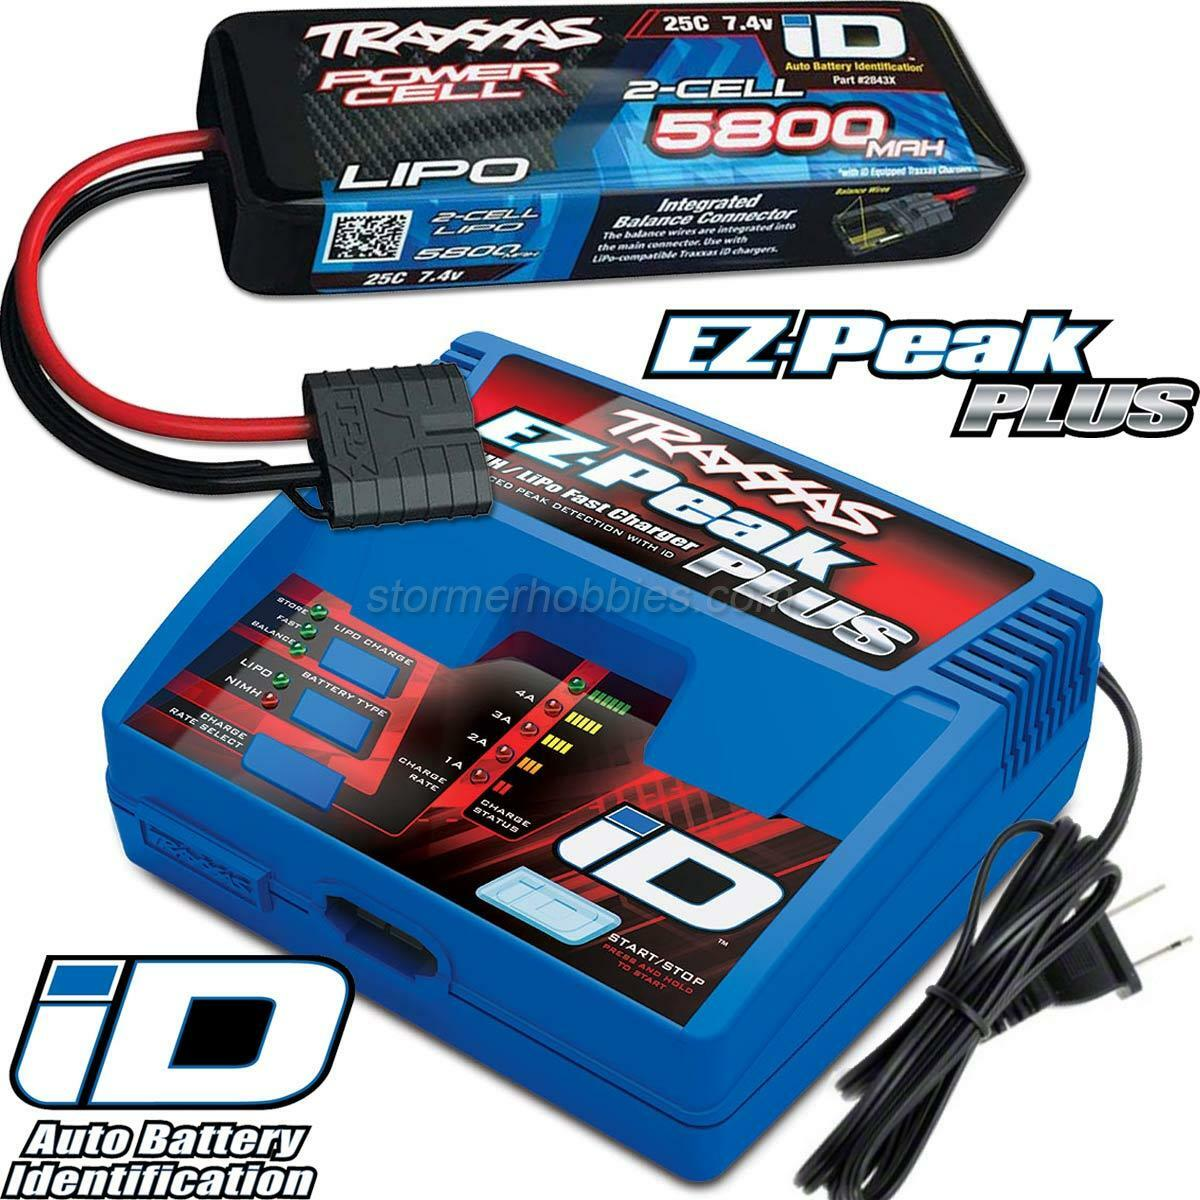 Traxxas EZ-Peak Plus LiPo Charger & 5800mAh 7.4V iD Battery Combo for STAMPEDE